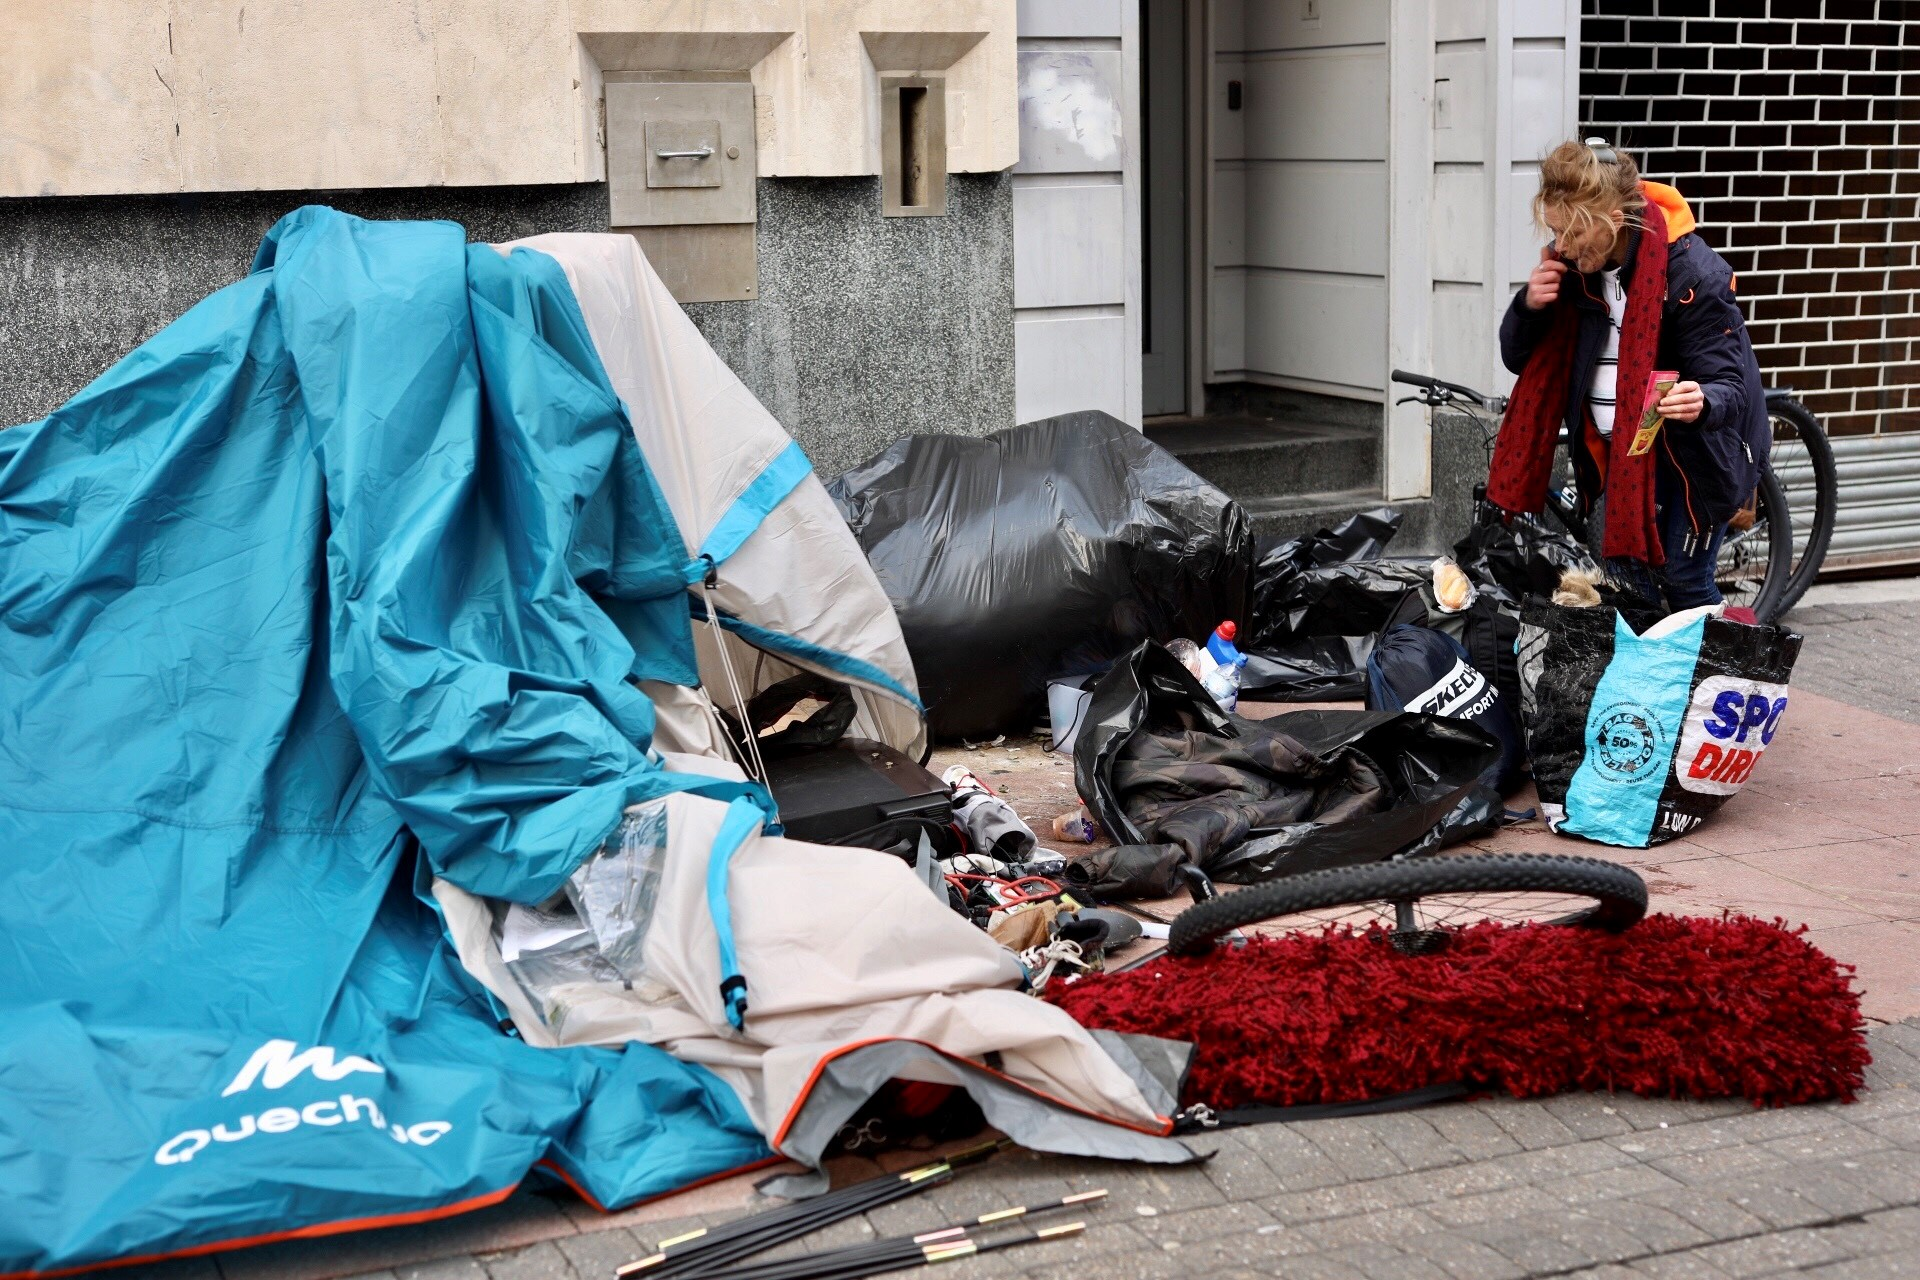 Homeless couple's tent removed from Duke Street in Brighton after almost six months